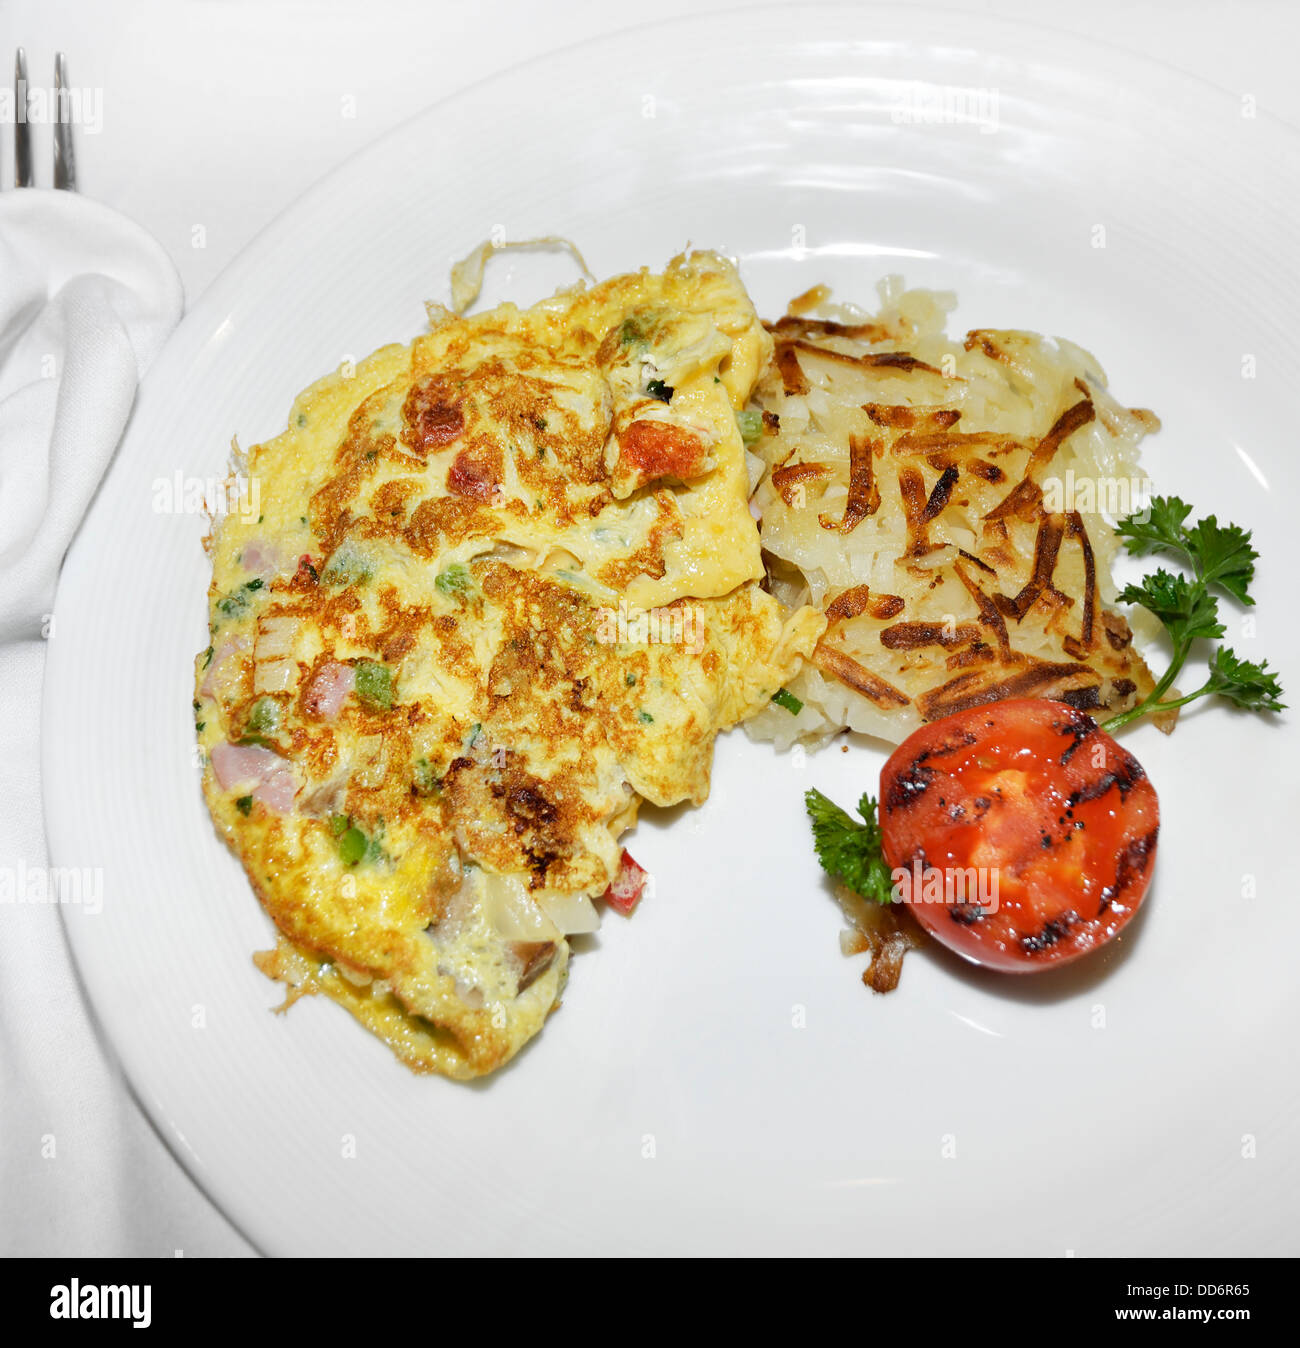 Omelet With Vegetables And Bacon,Top View - Stock Image